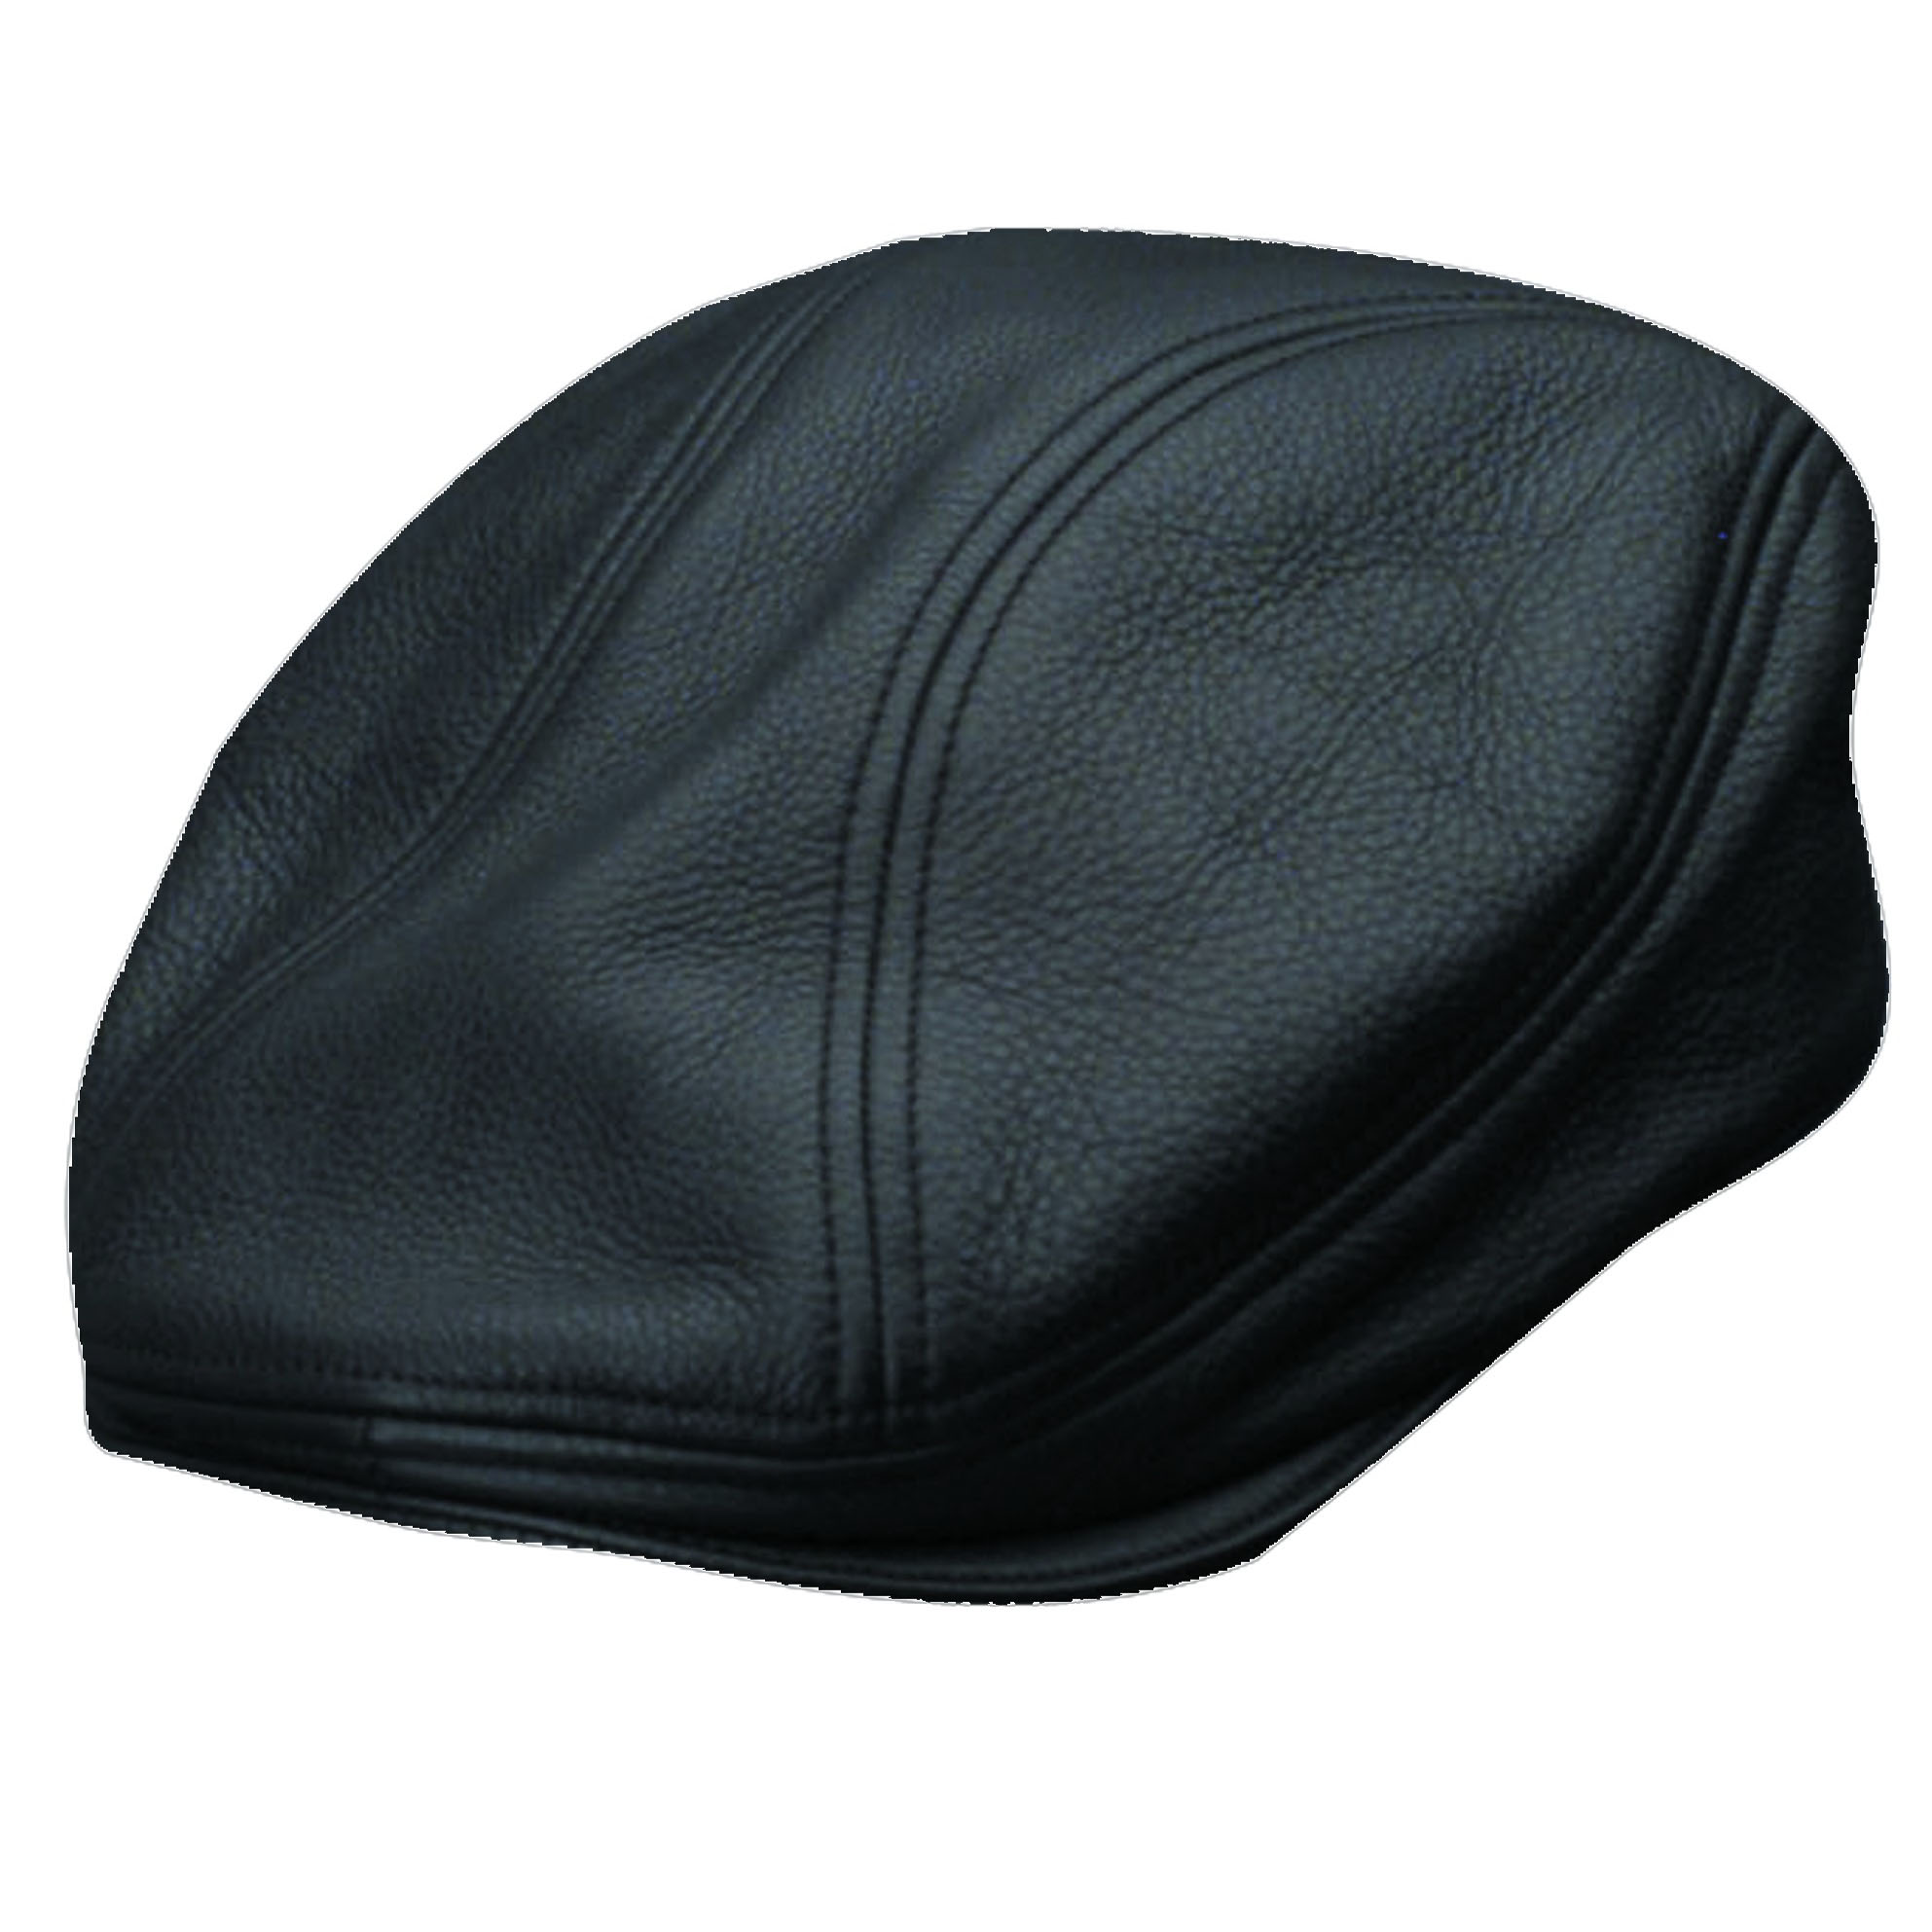 Stetson Oily Timber Ivy Cap Black ad65e2d57e2